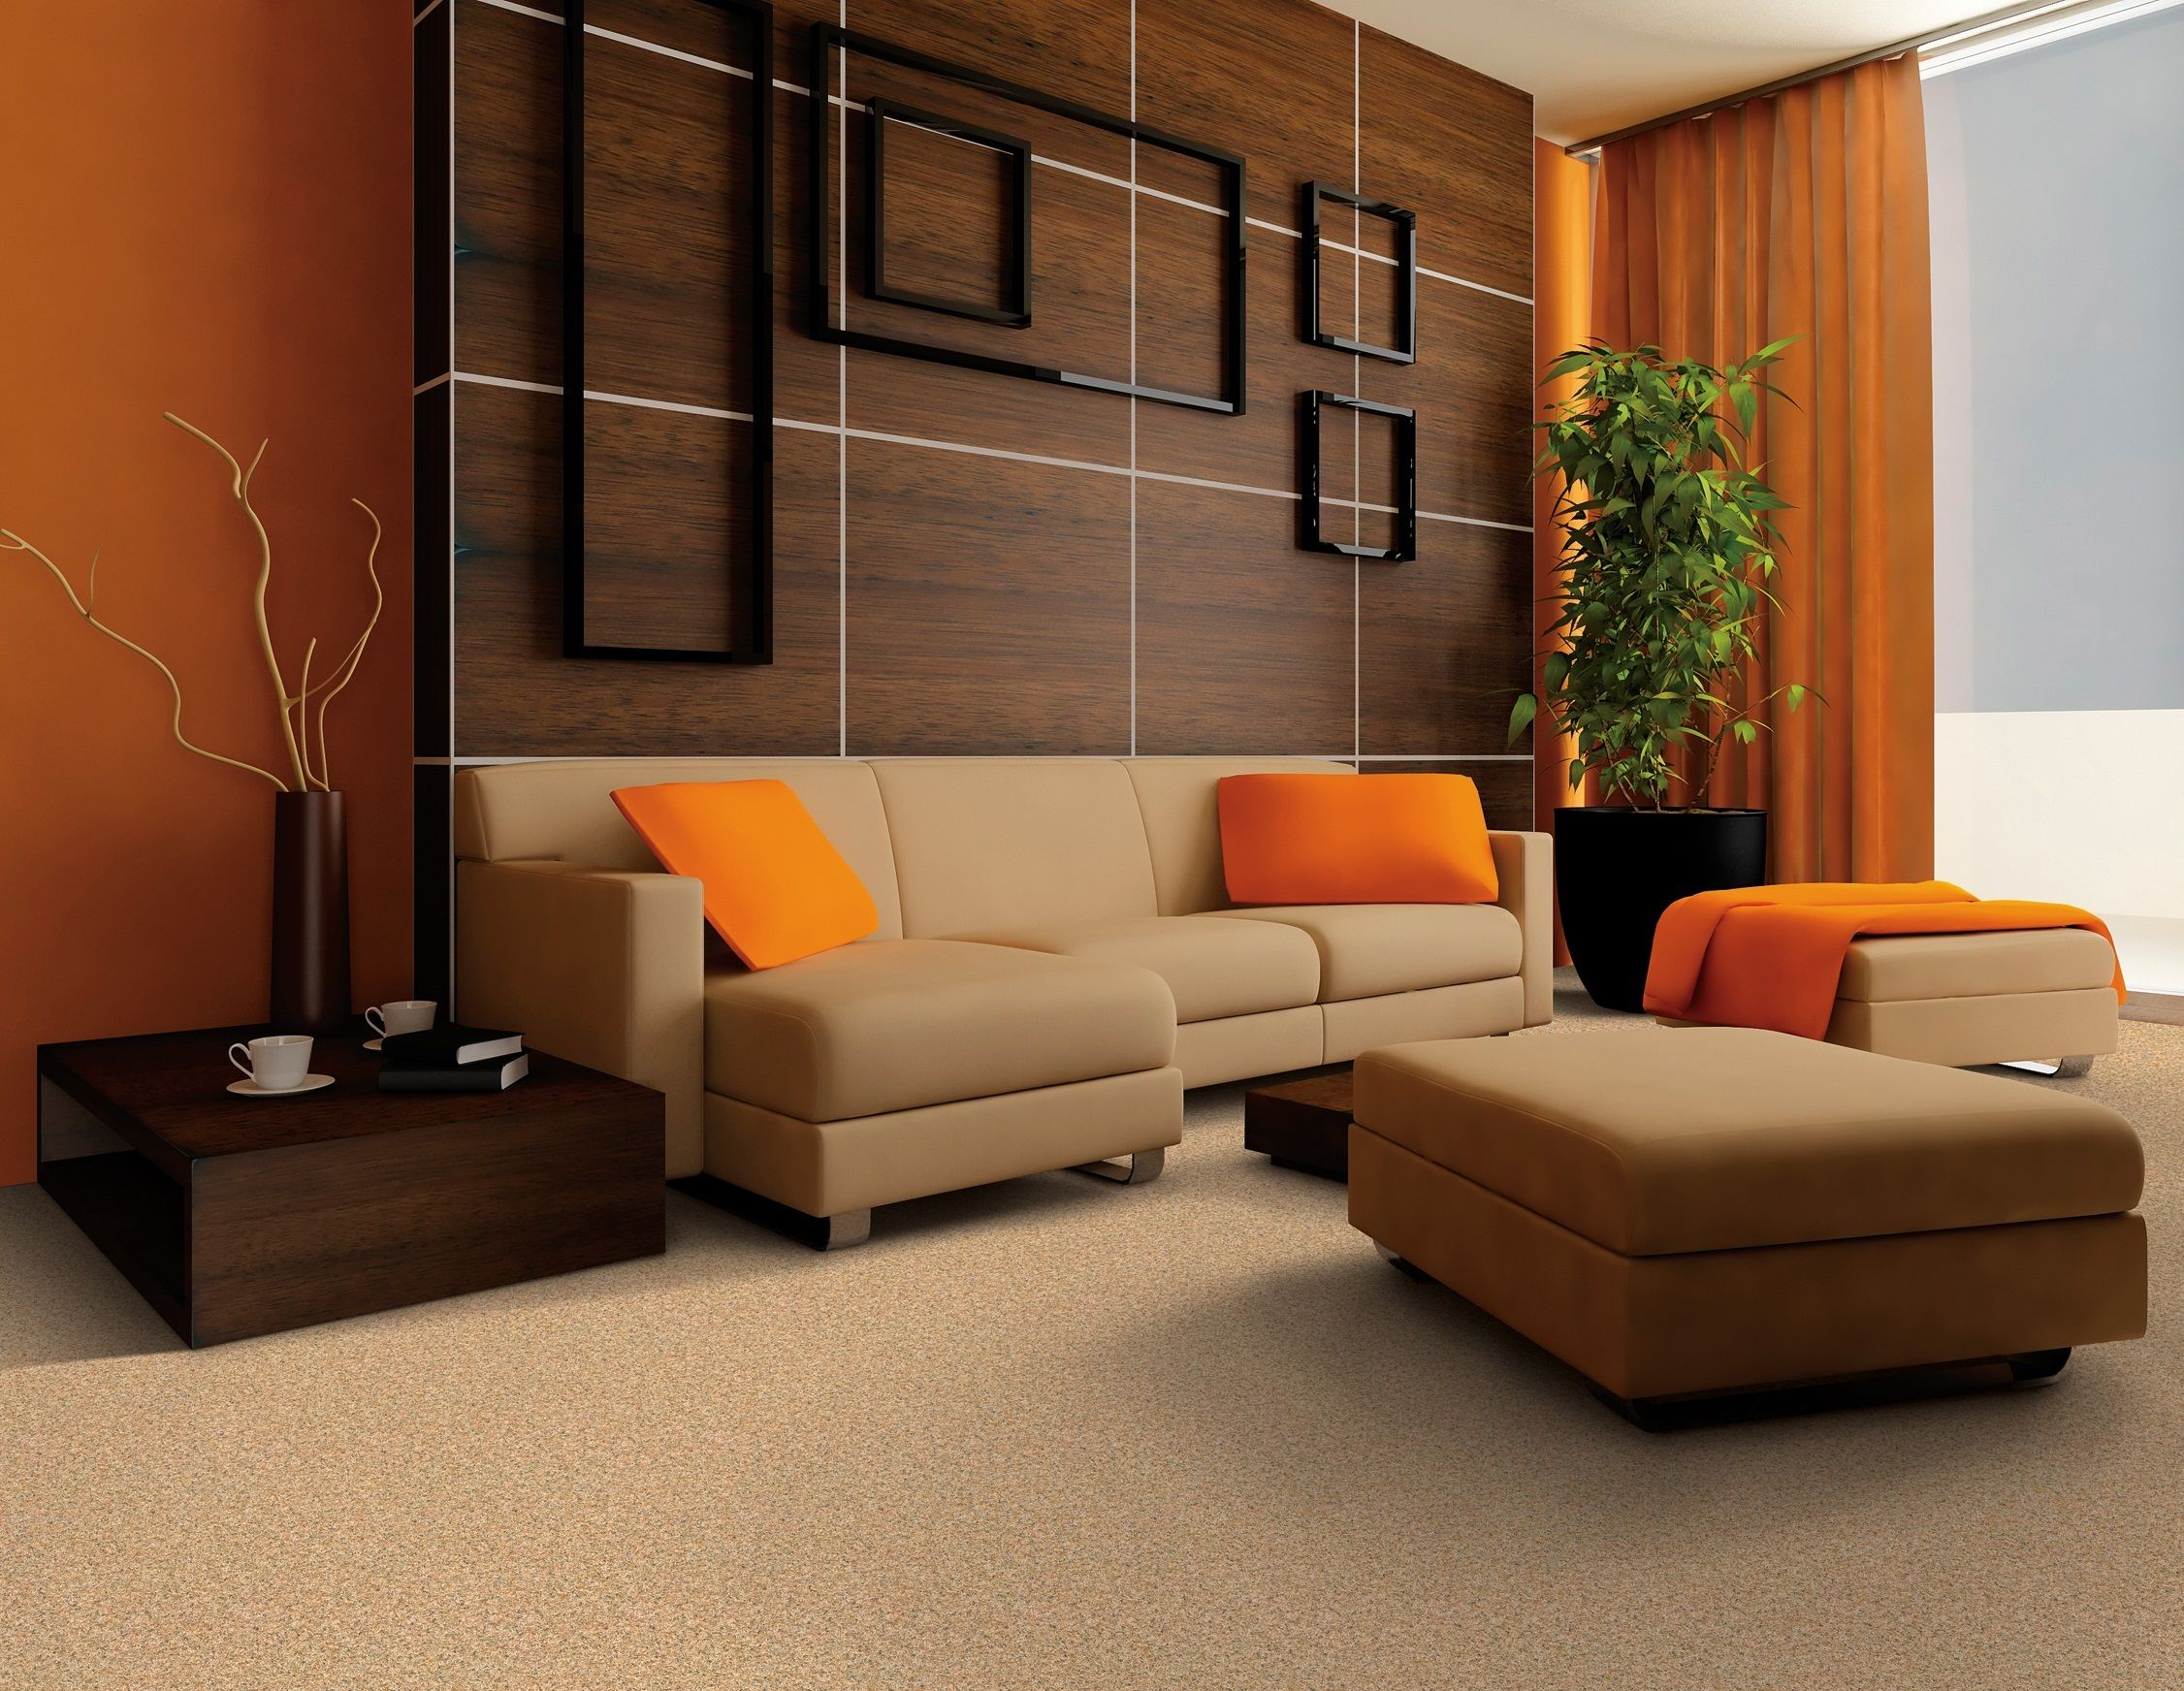 warm color wall paint and brown shades sofa design ideas for living room decoration - Warm Wall Colors For Living Rooms